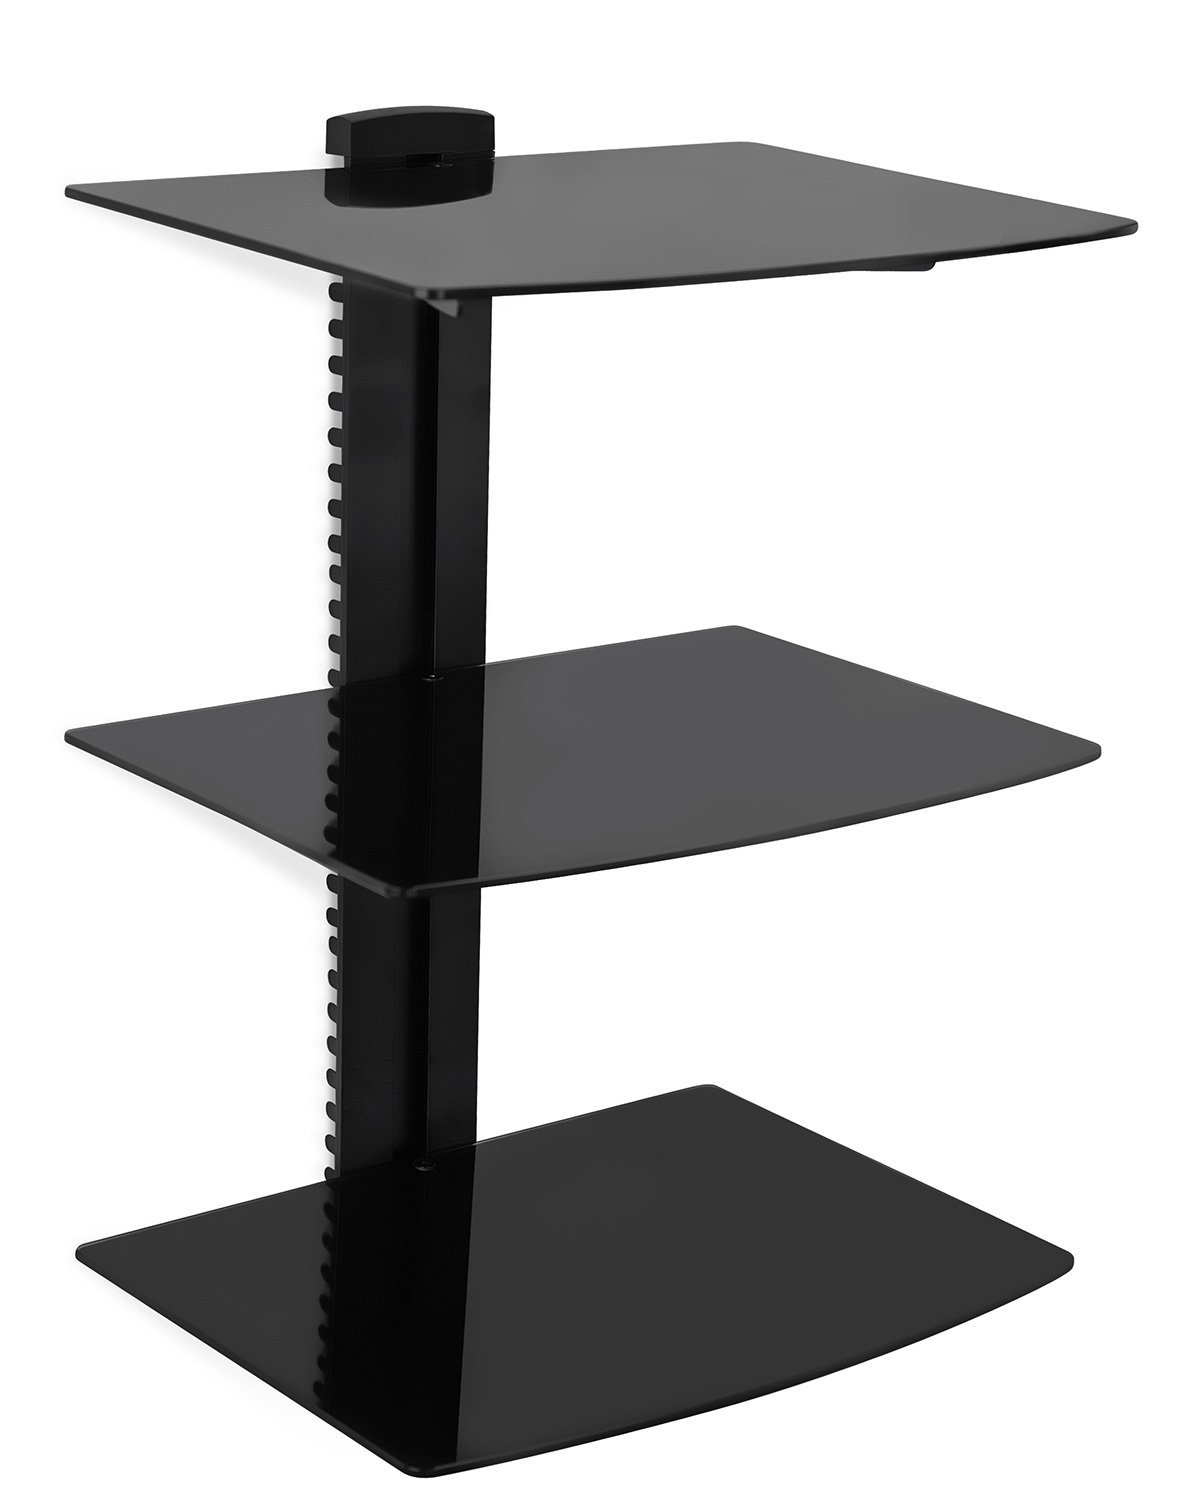 Amazon Mount It Wall Mounted Av Component Shelving System Within Cable Glass Shelf System (Image 5 of 15)